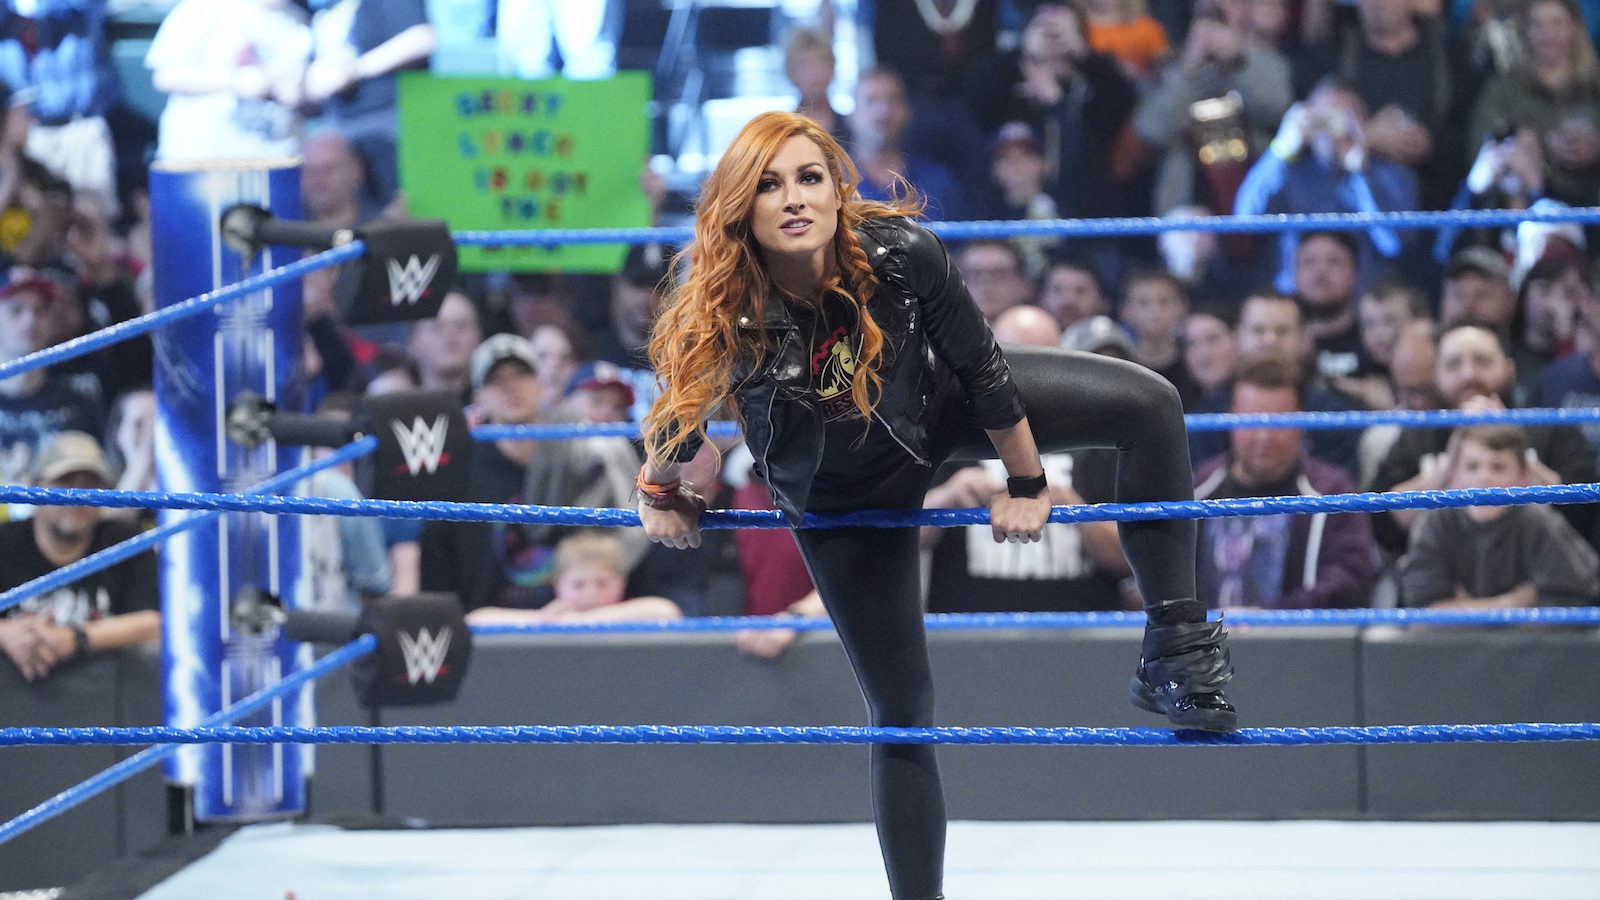 Becky Lynch: WWE star on Money in the Bank, her career